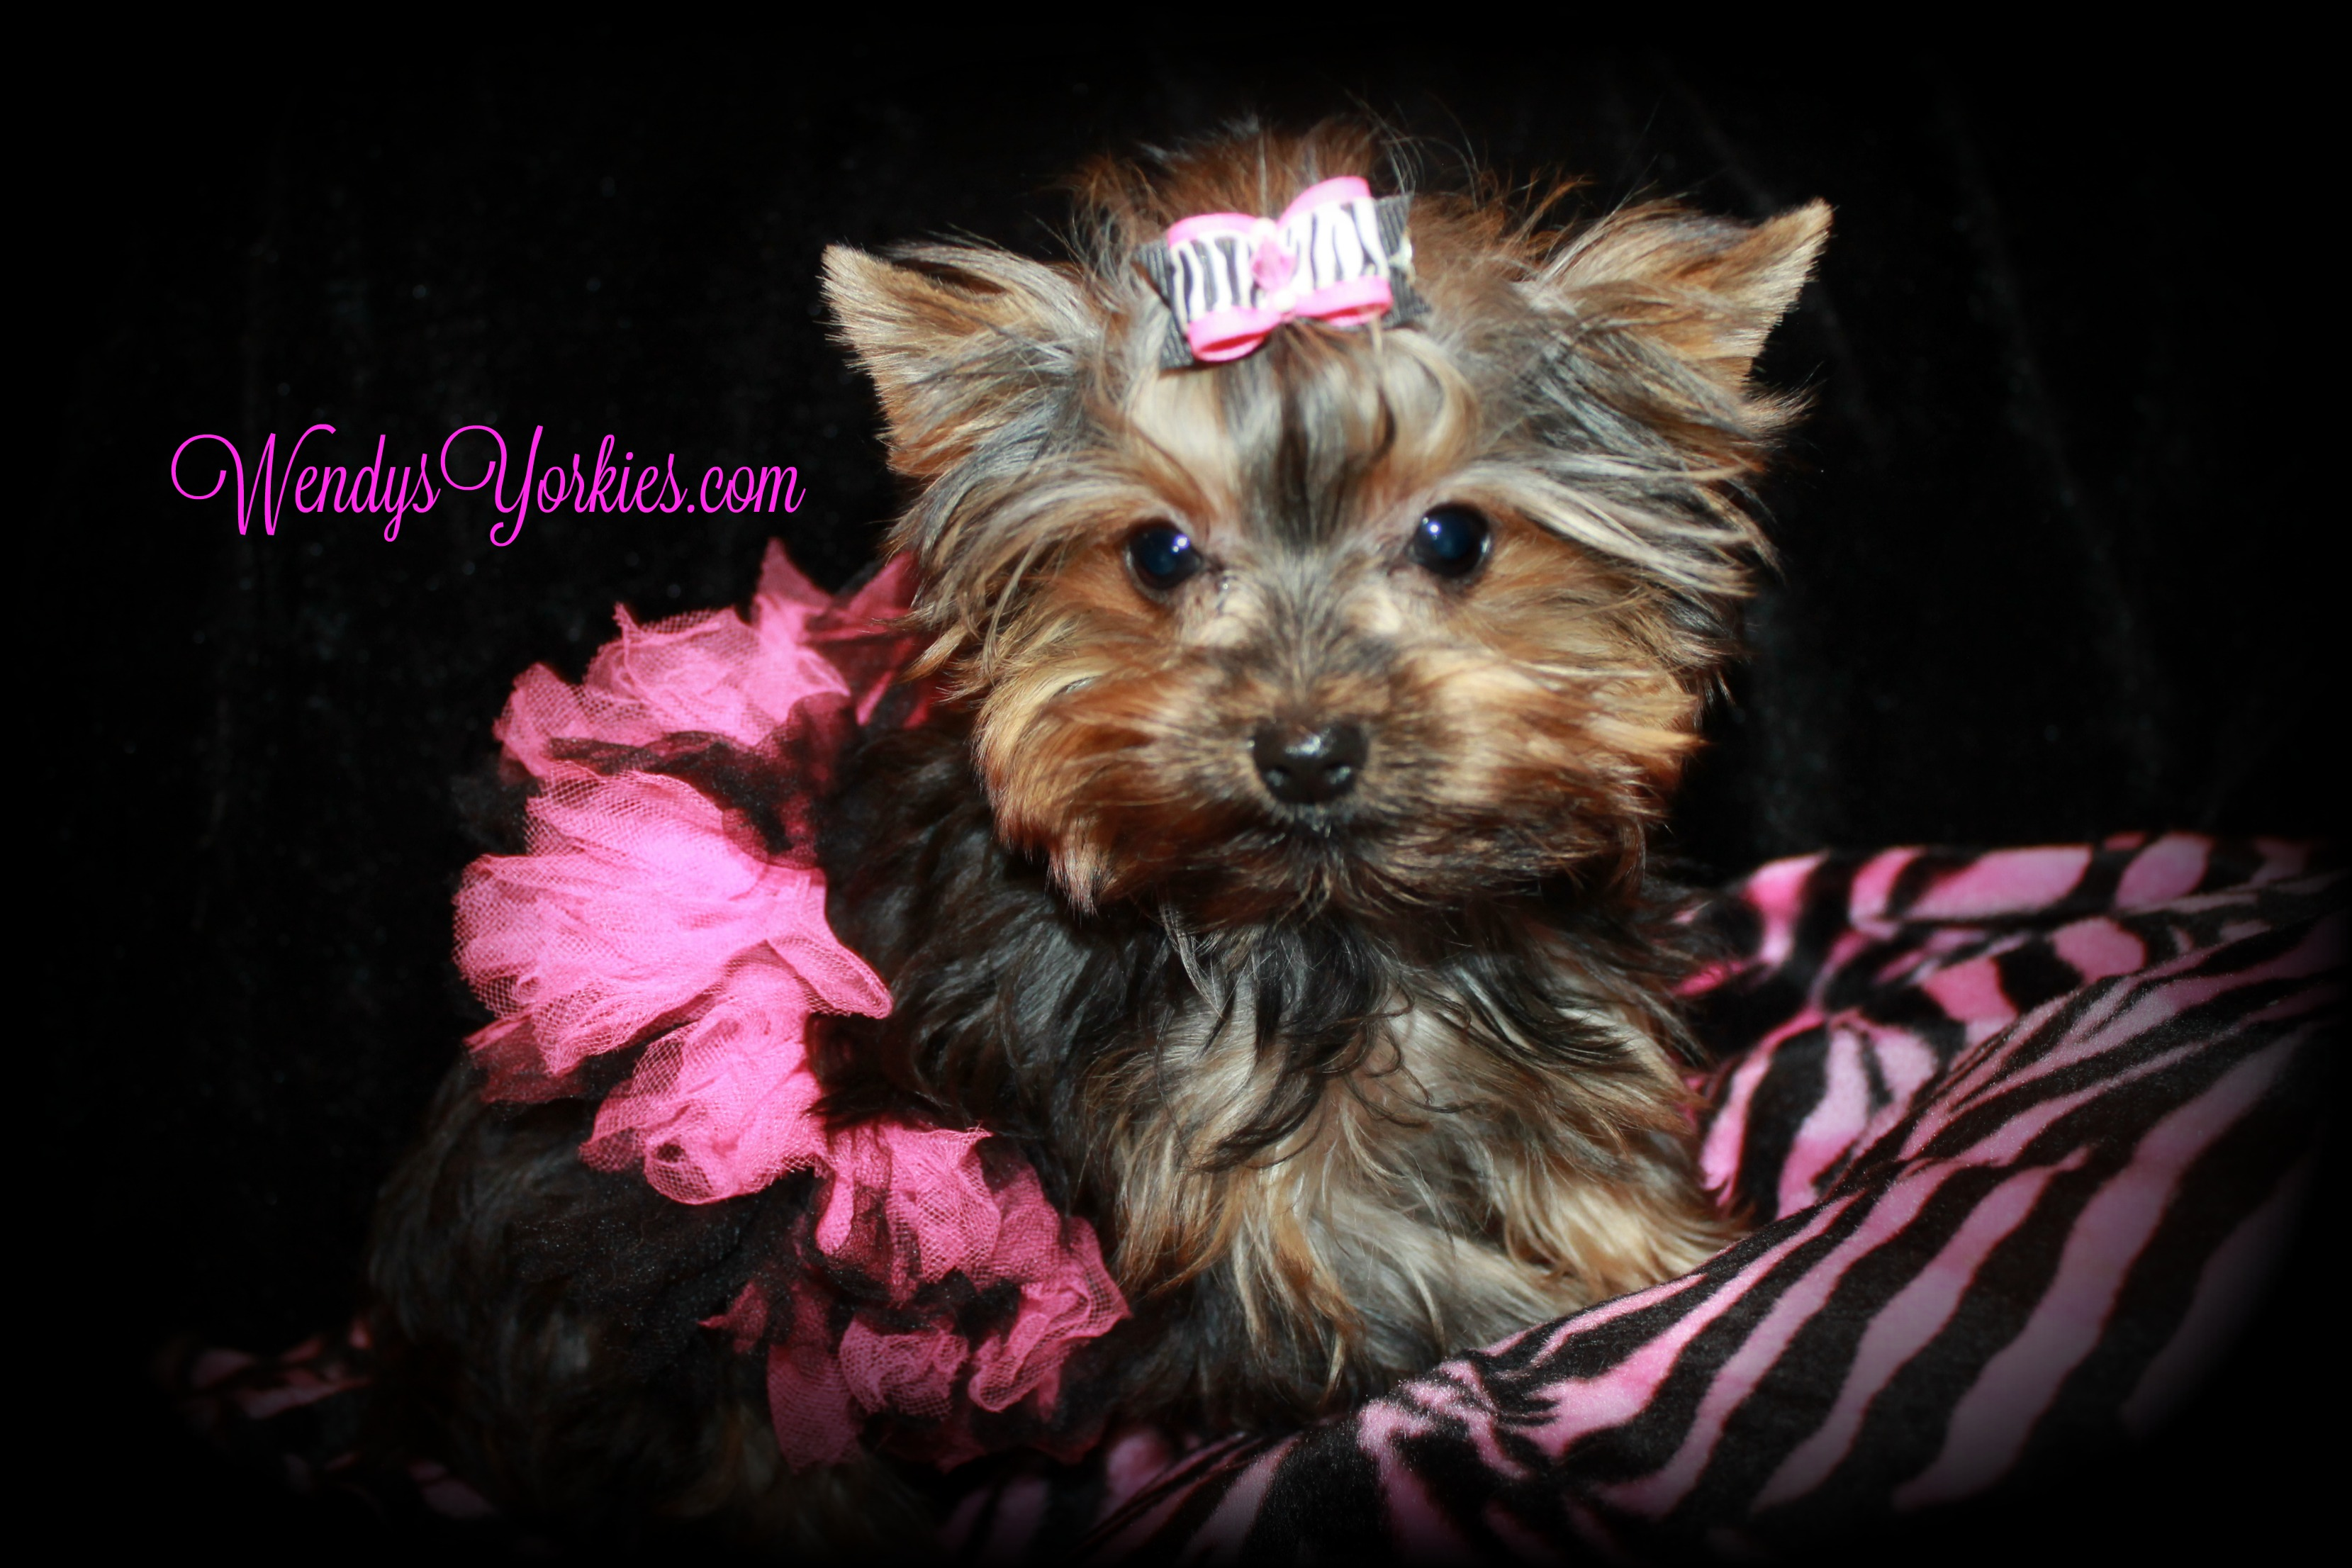 Cute Tiny Yorkies puppies for sale, Erma